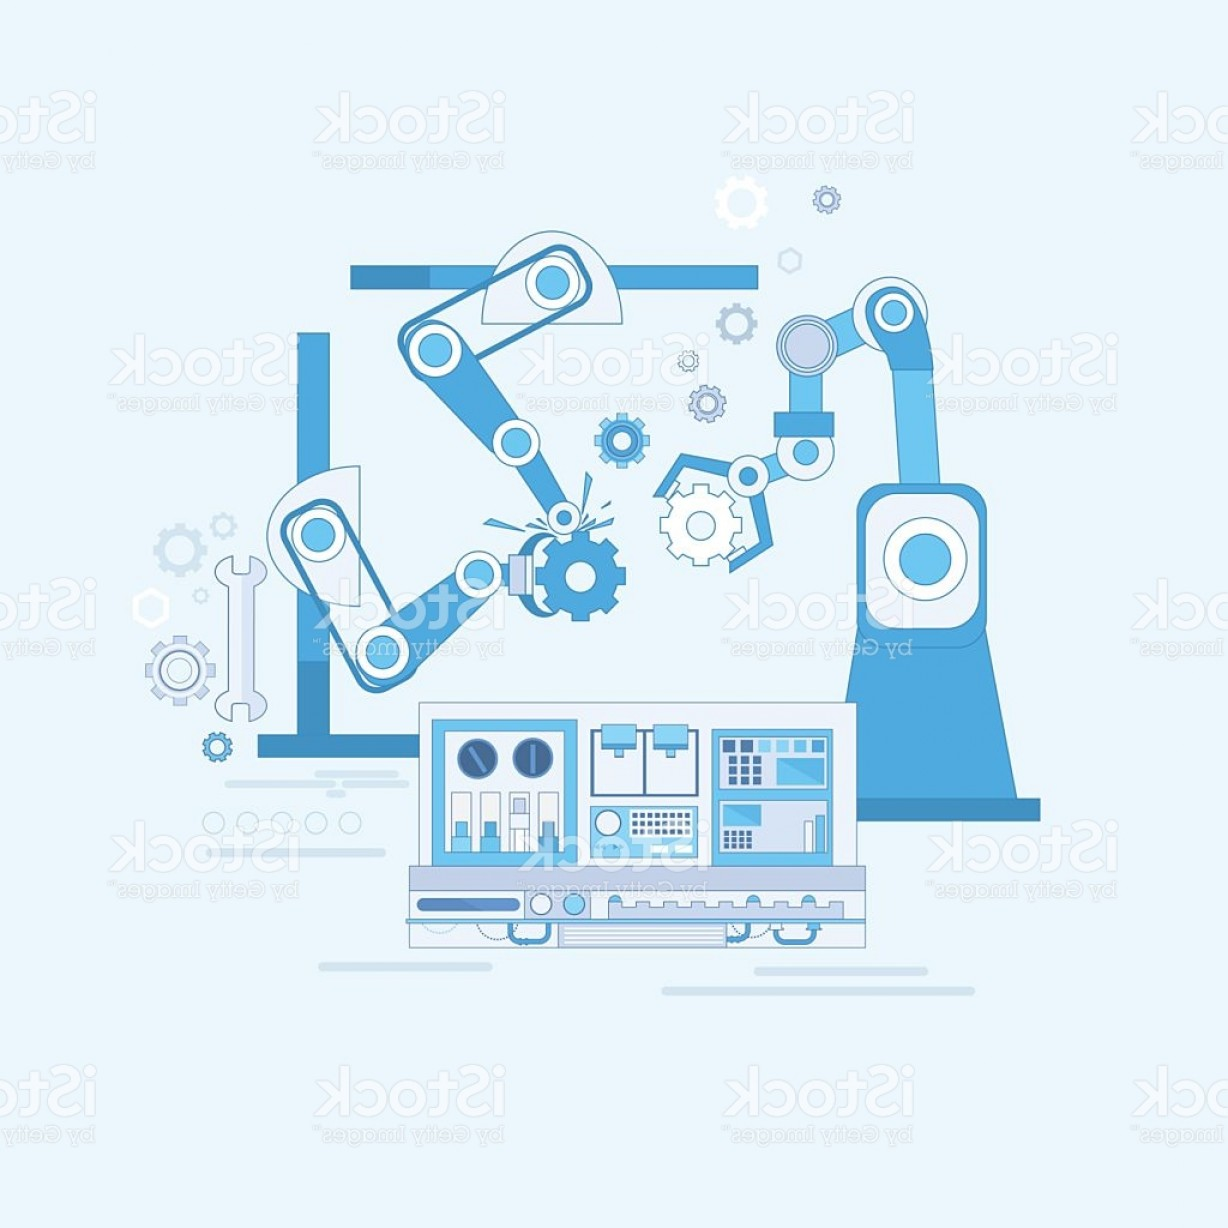 Industrial Vector Art: Robotic Assembly Line Industrial Automation Industry Production Web Banner Gm